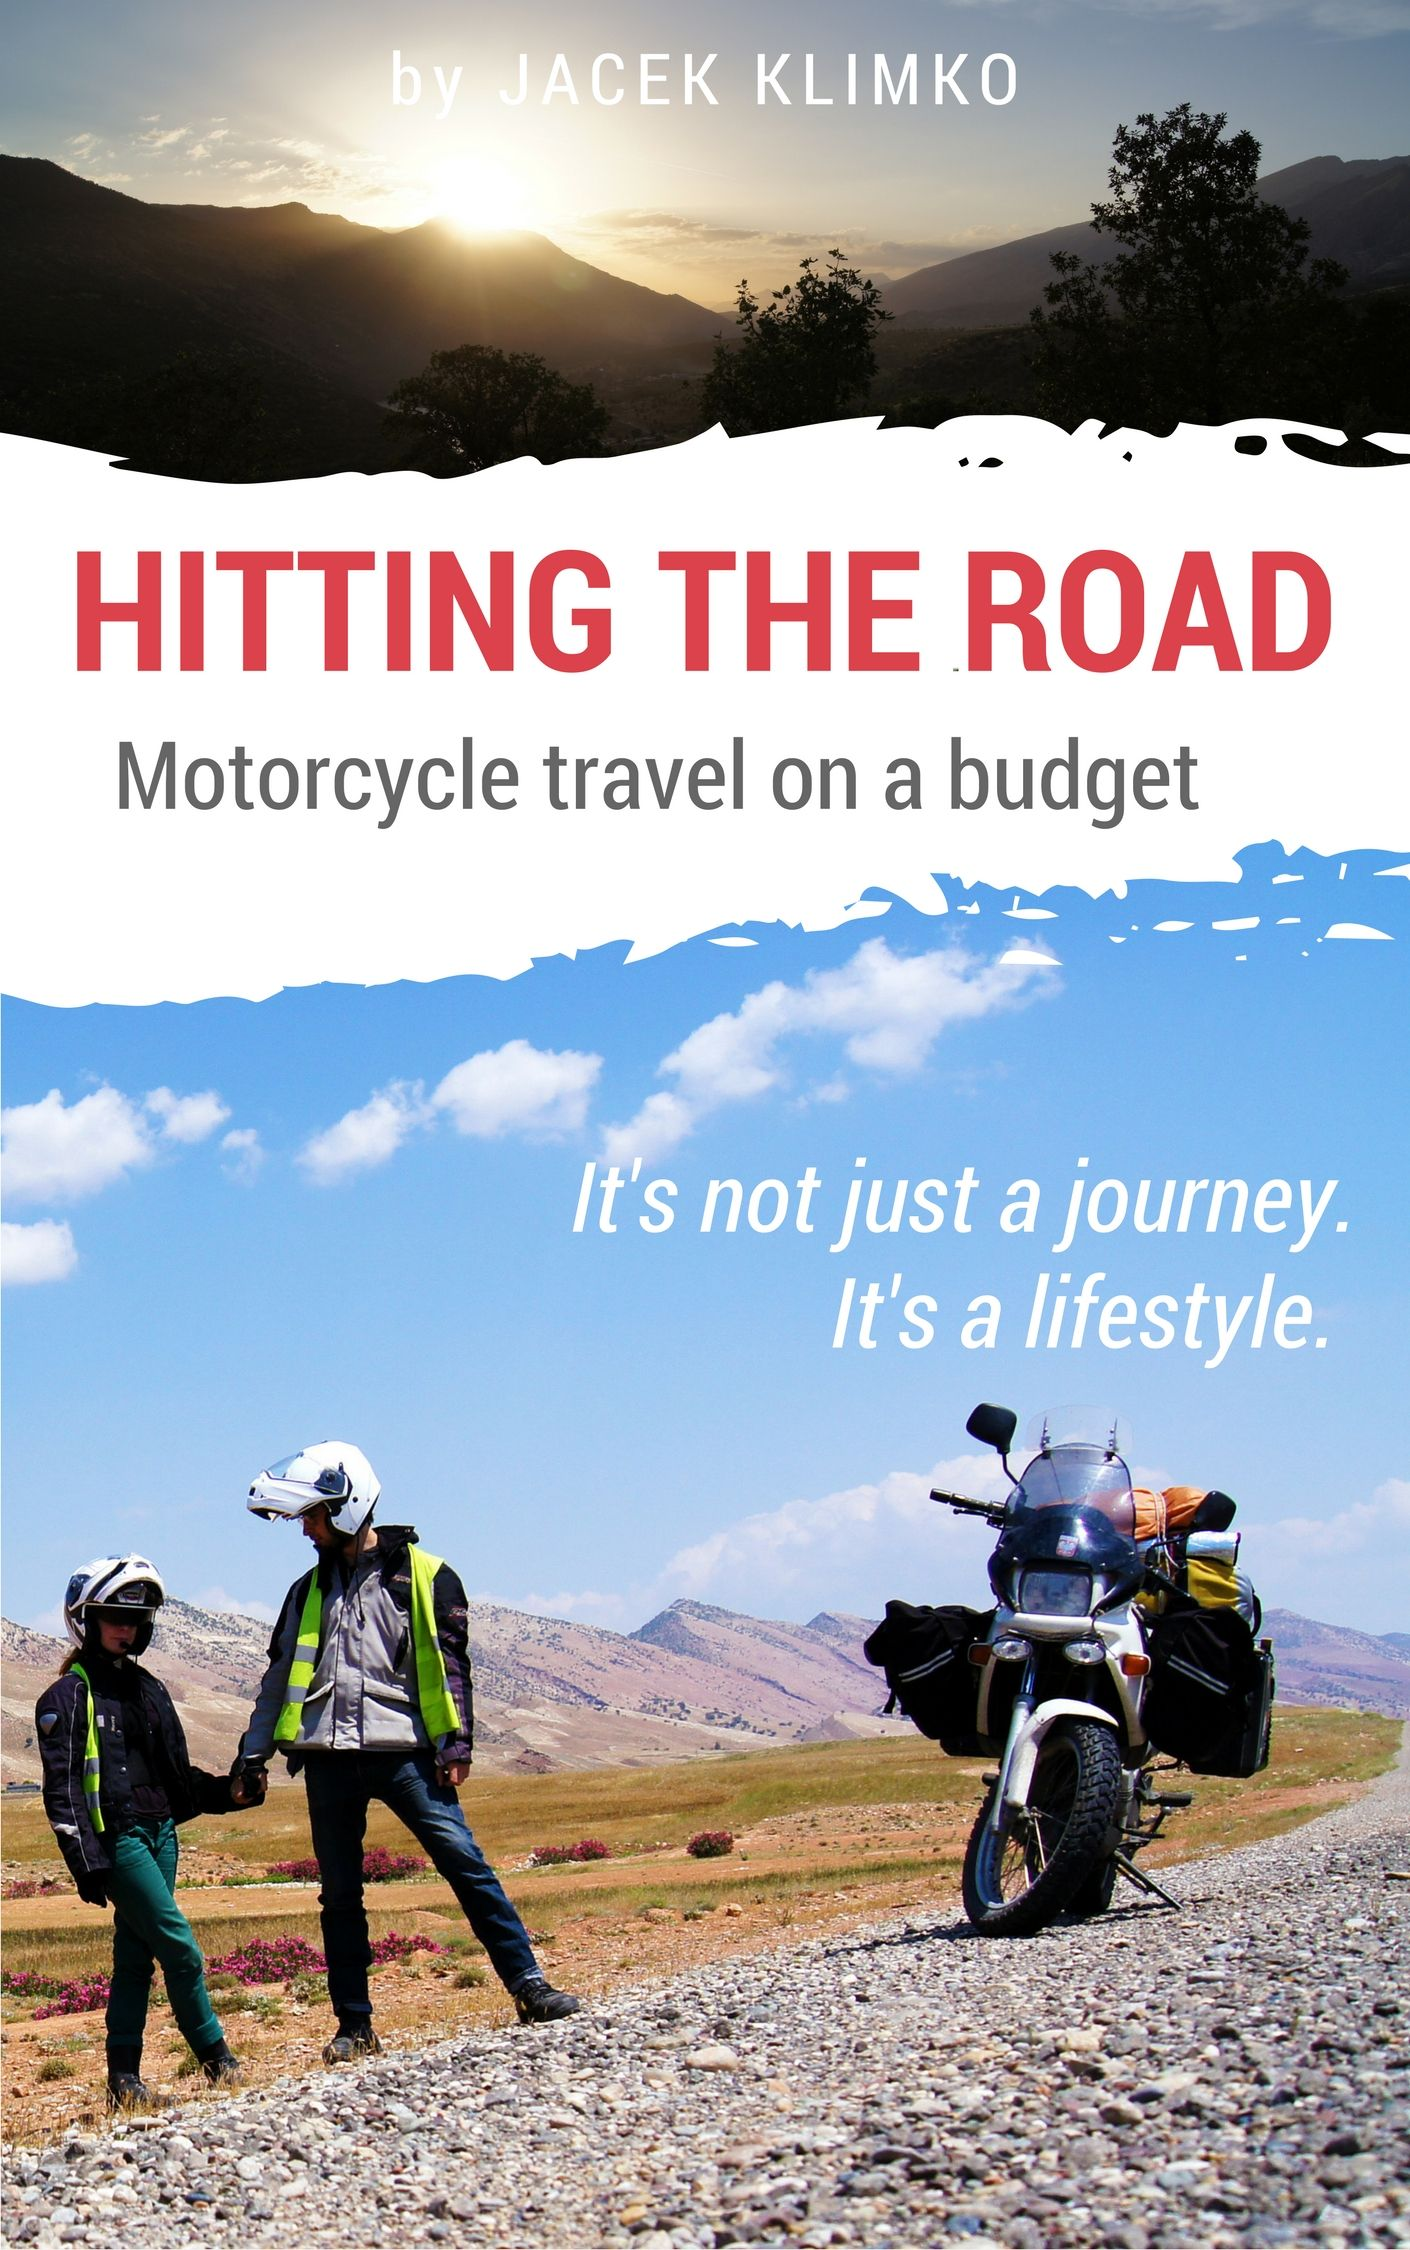 Motorcycle Travel Book Hitting The Road Motorcycle Travel On A Budget Motorcycle Travel Travel Book Riding Motorcycle